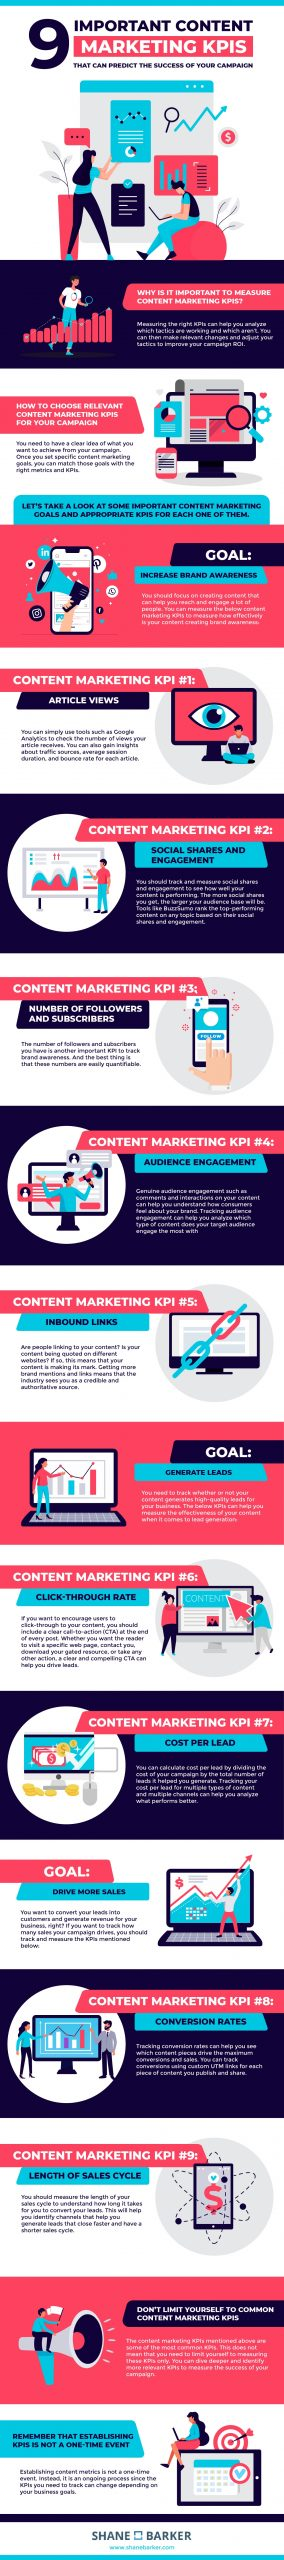 Is Your Content Marketing Campaign Effective? [Infographic]